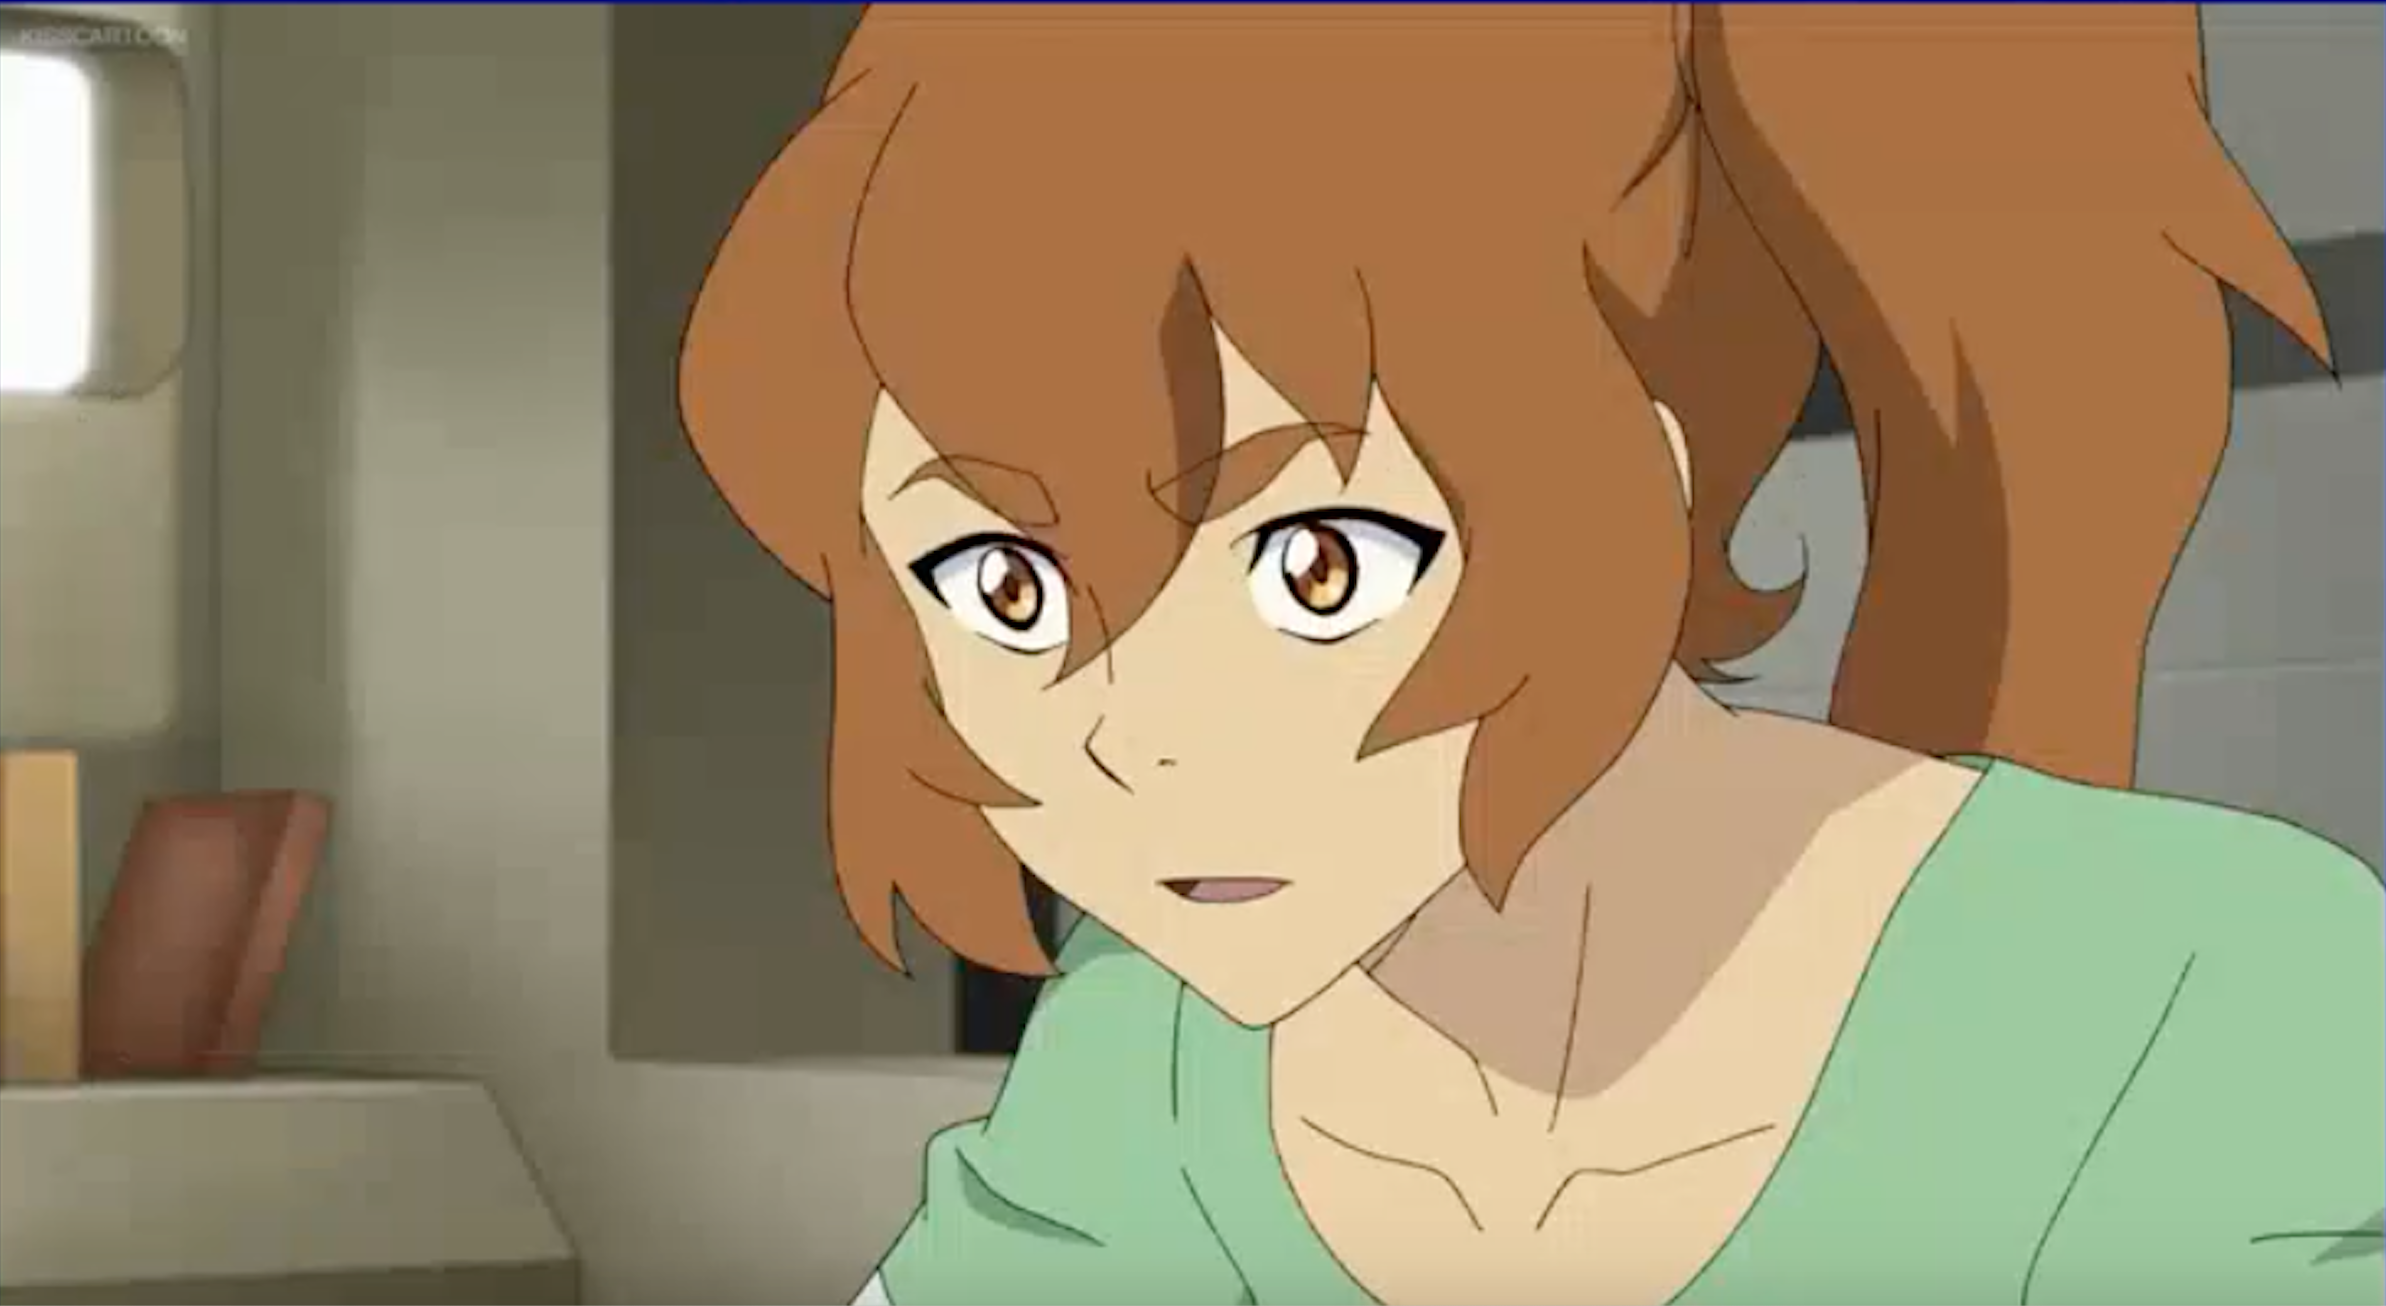 Pidge Katie Holt From Voltron Legendary Defender Voltron Voltron Legendary Defender Matt Holt Voltron